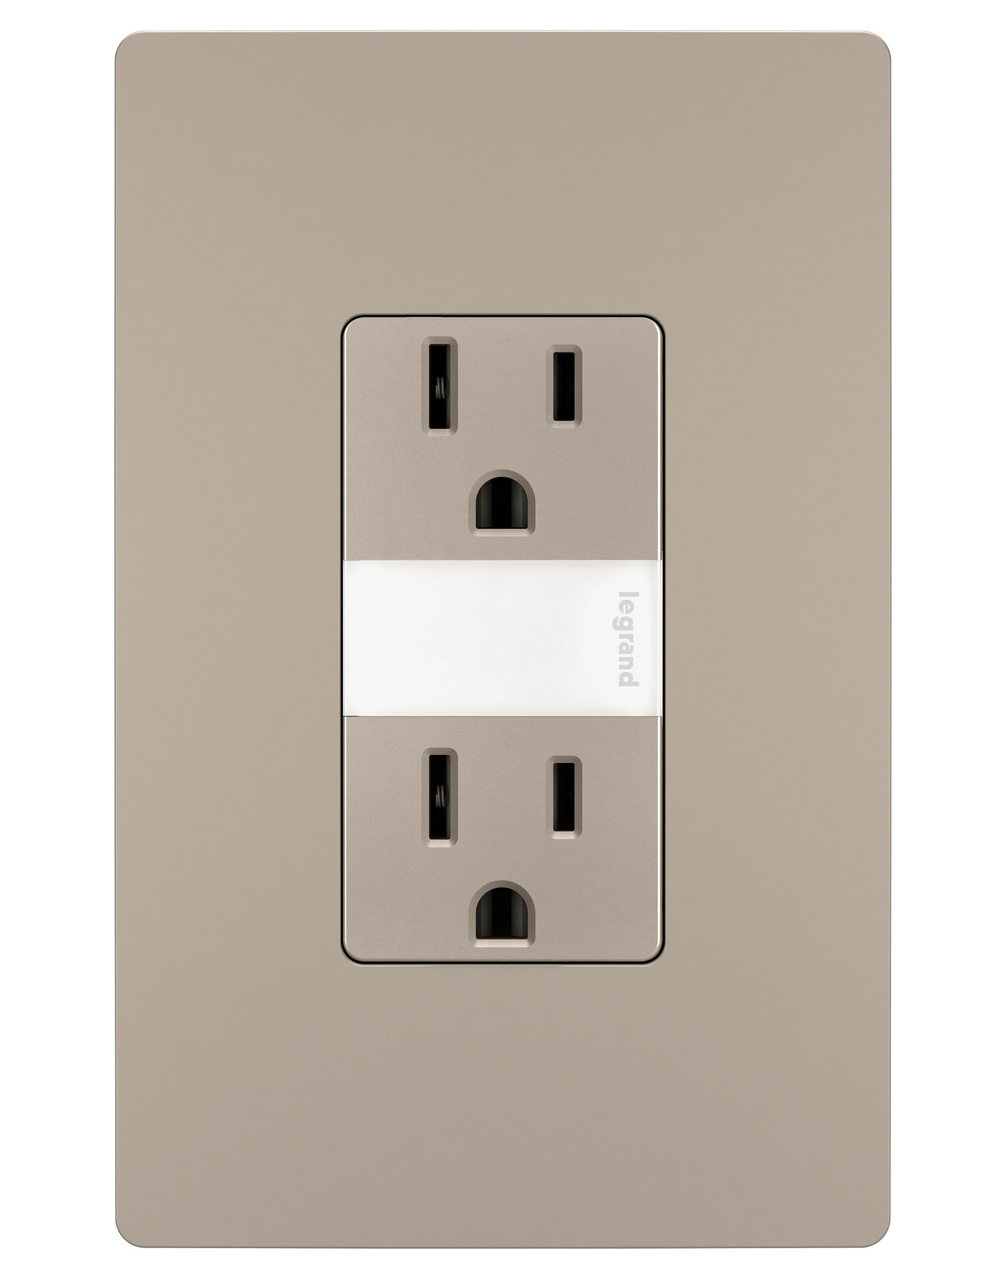 Night Light with Two 15A Tamper-Resistant Outlets, Nickel